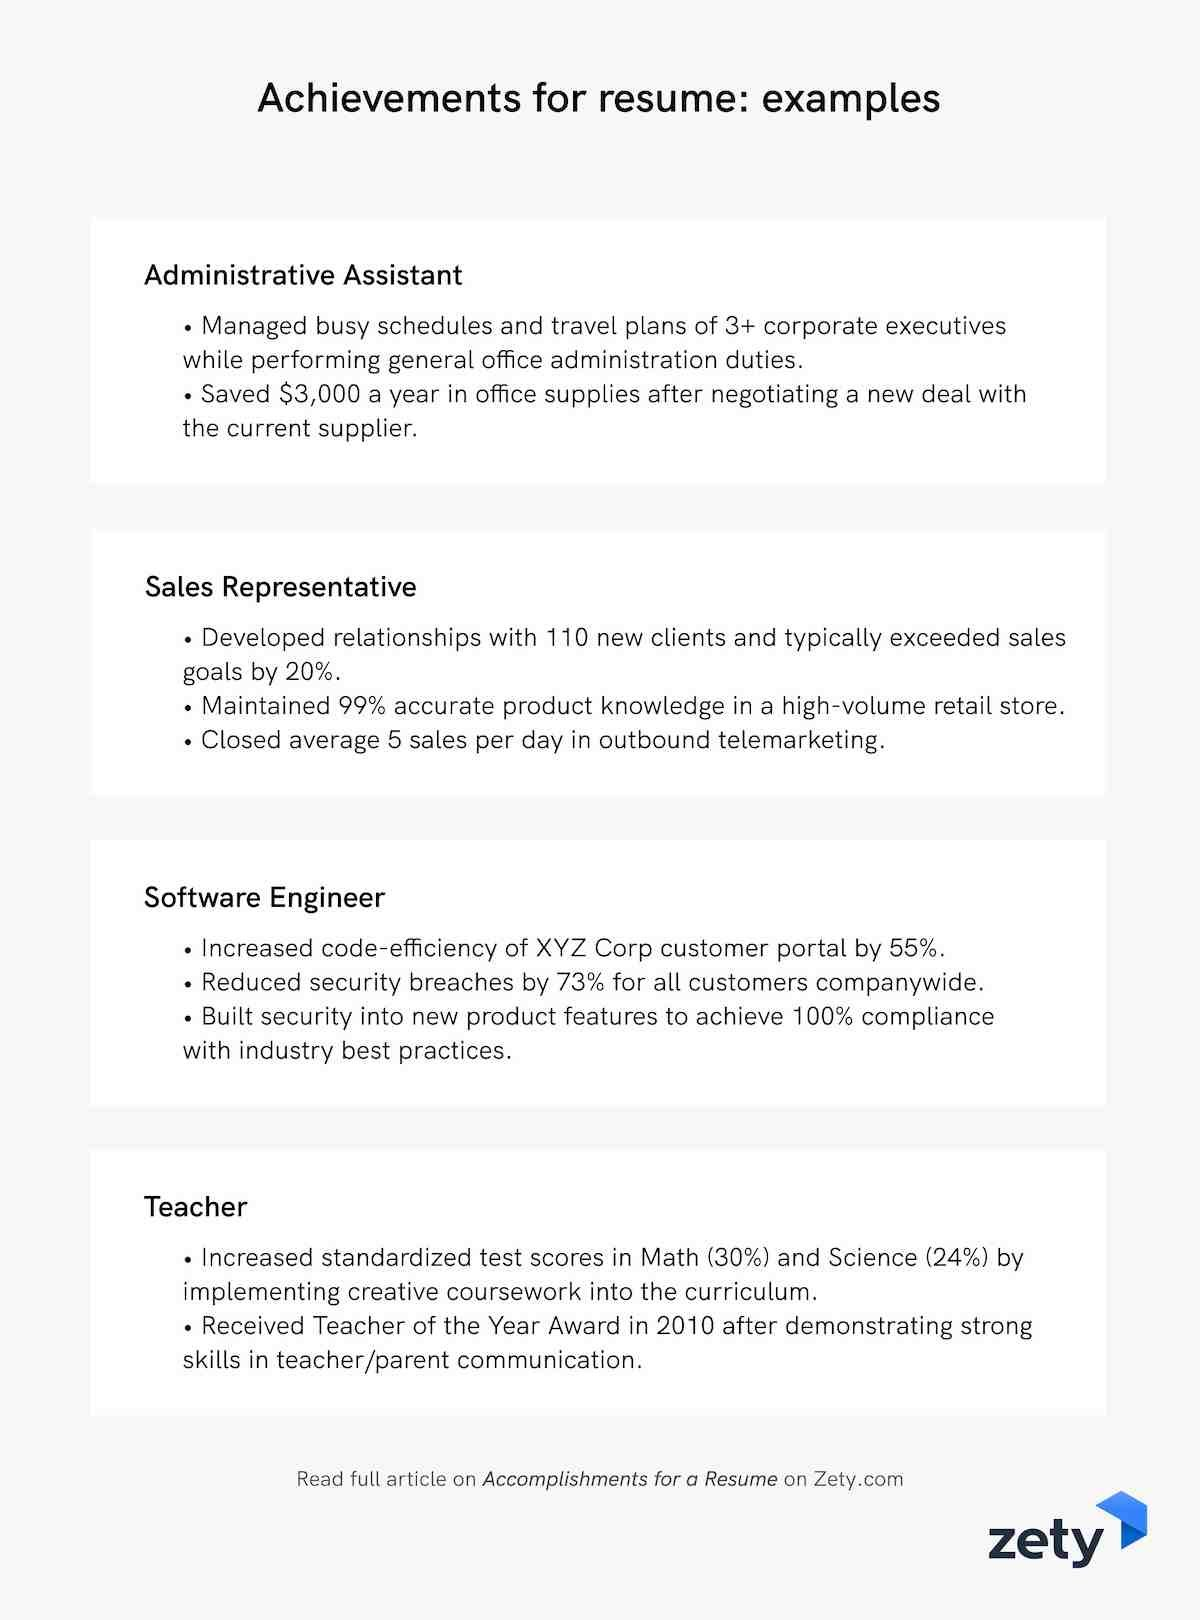 accomplishments for resume achievements awards examples interest job accounting objective Resume Awards Examples For Resume